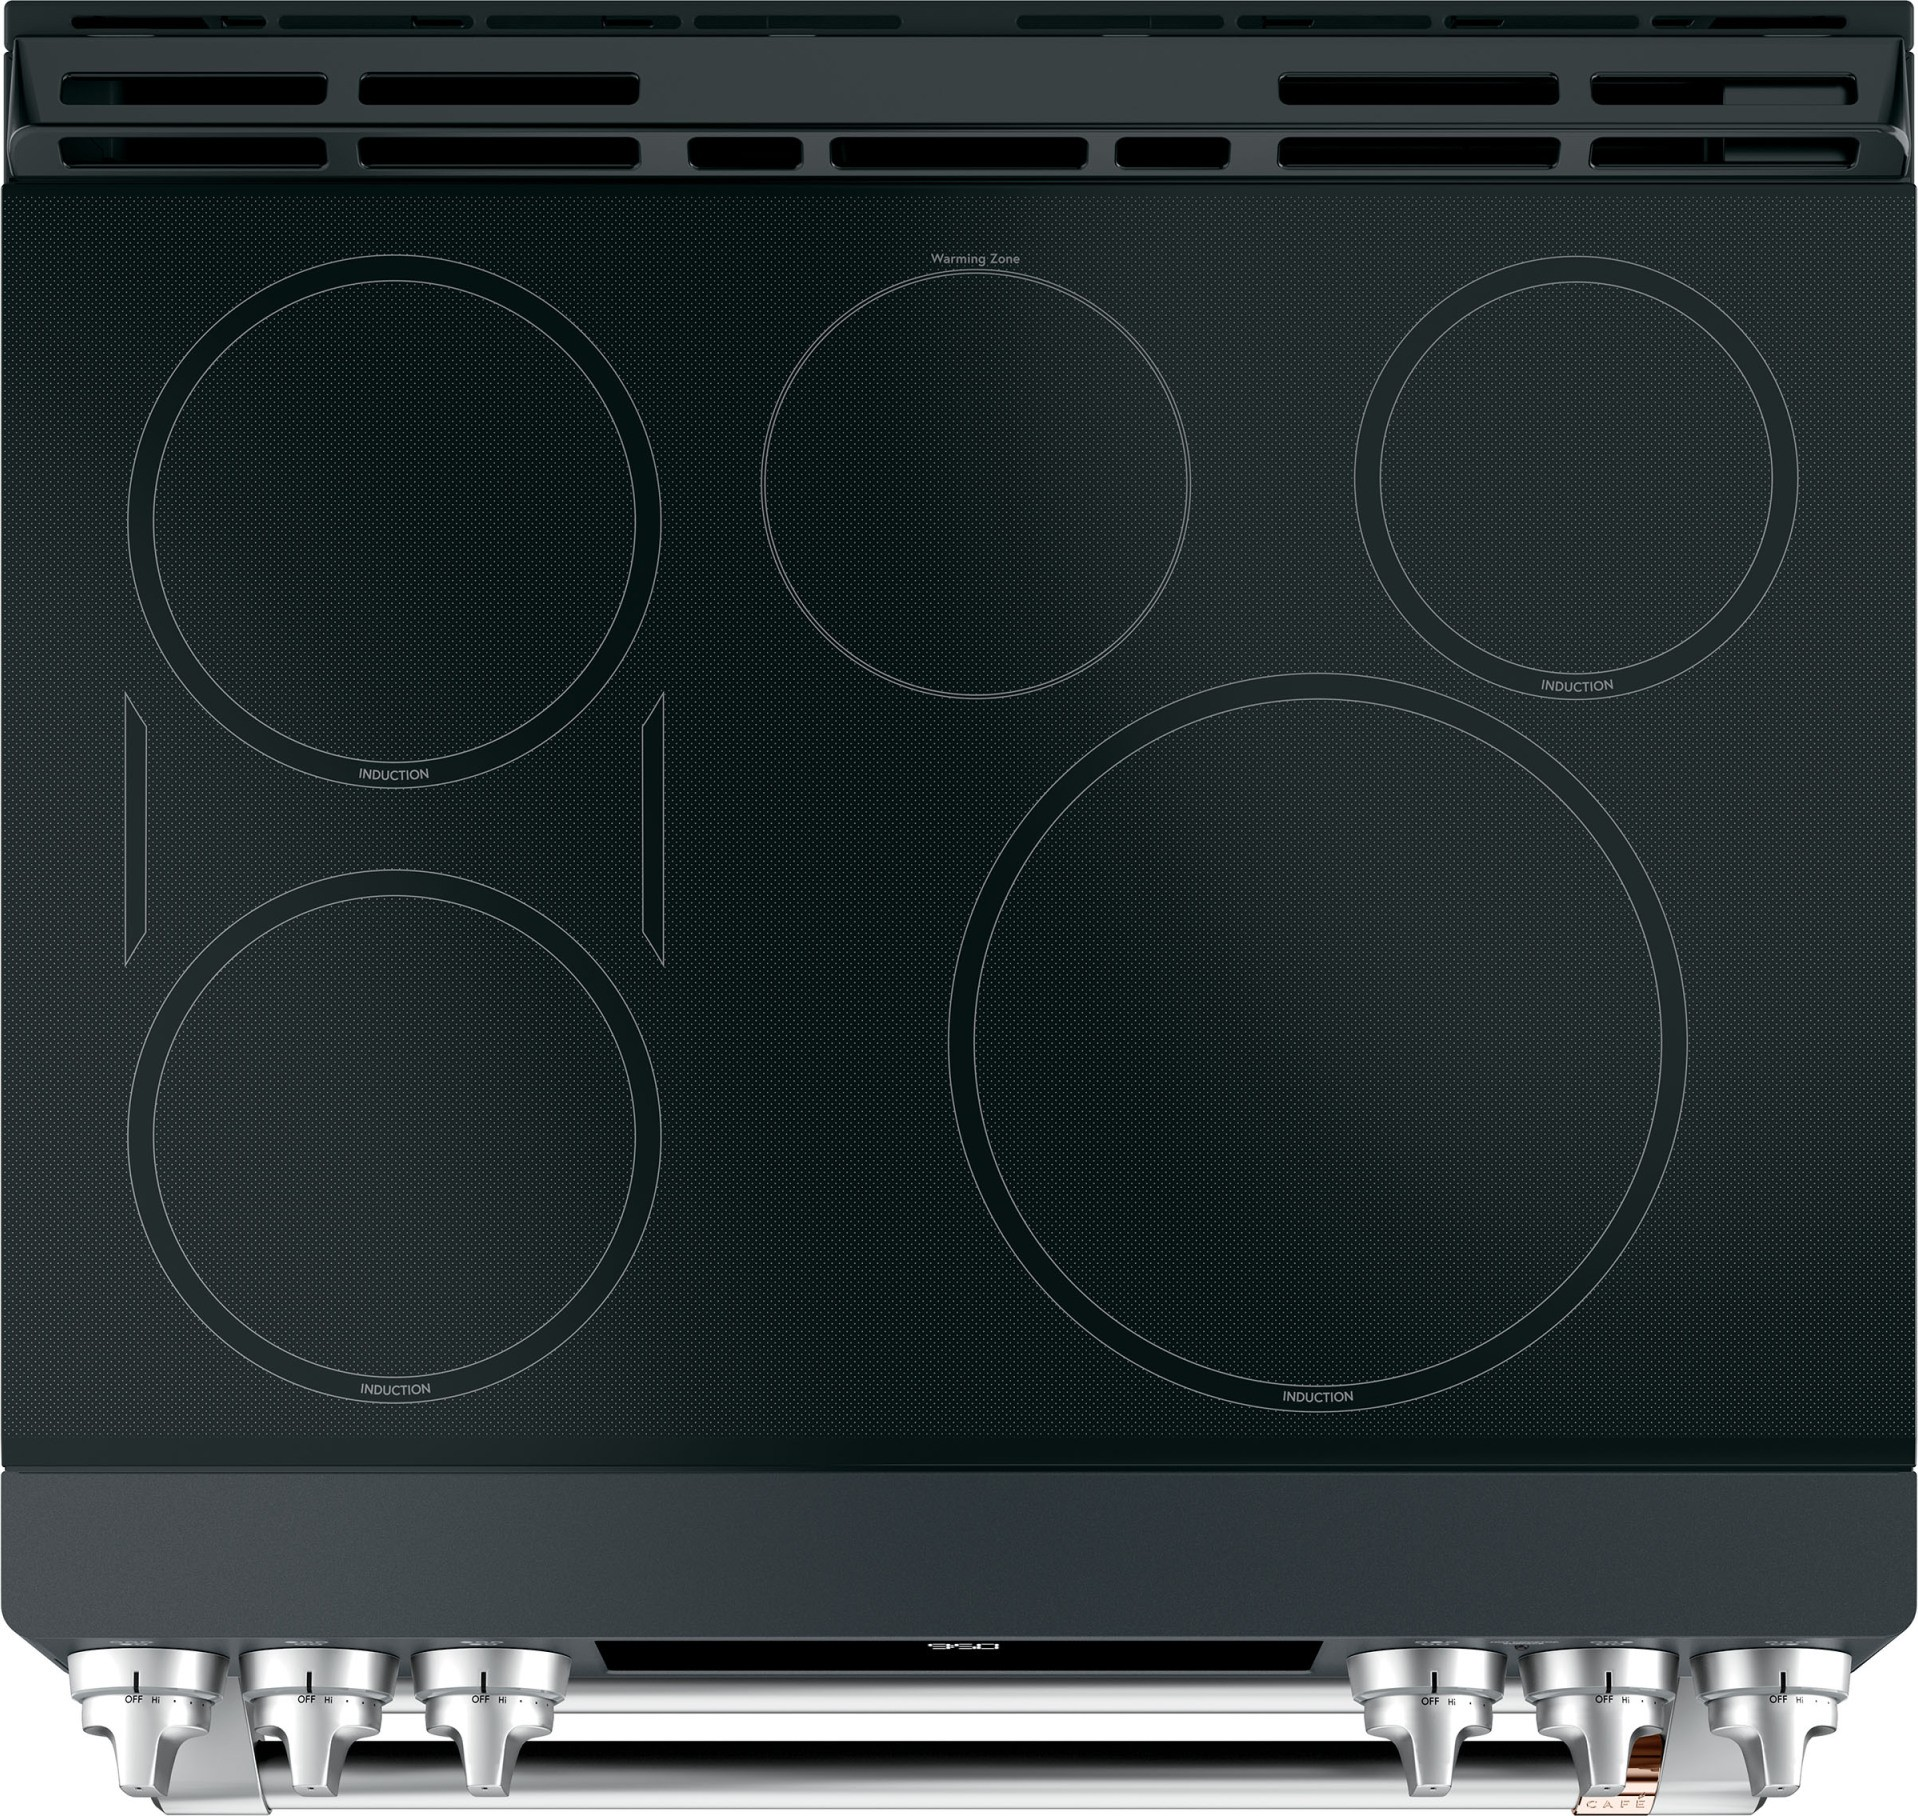 Chs950p3md1 Cafe 30 Quot Slide In Double Oven Induction